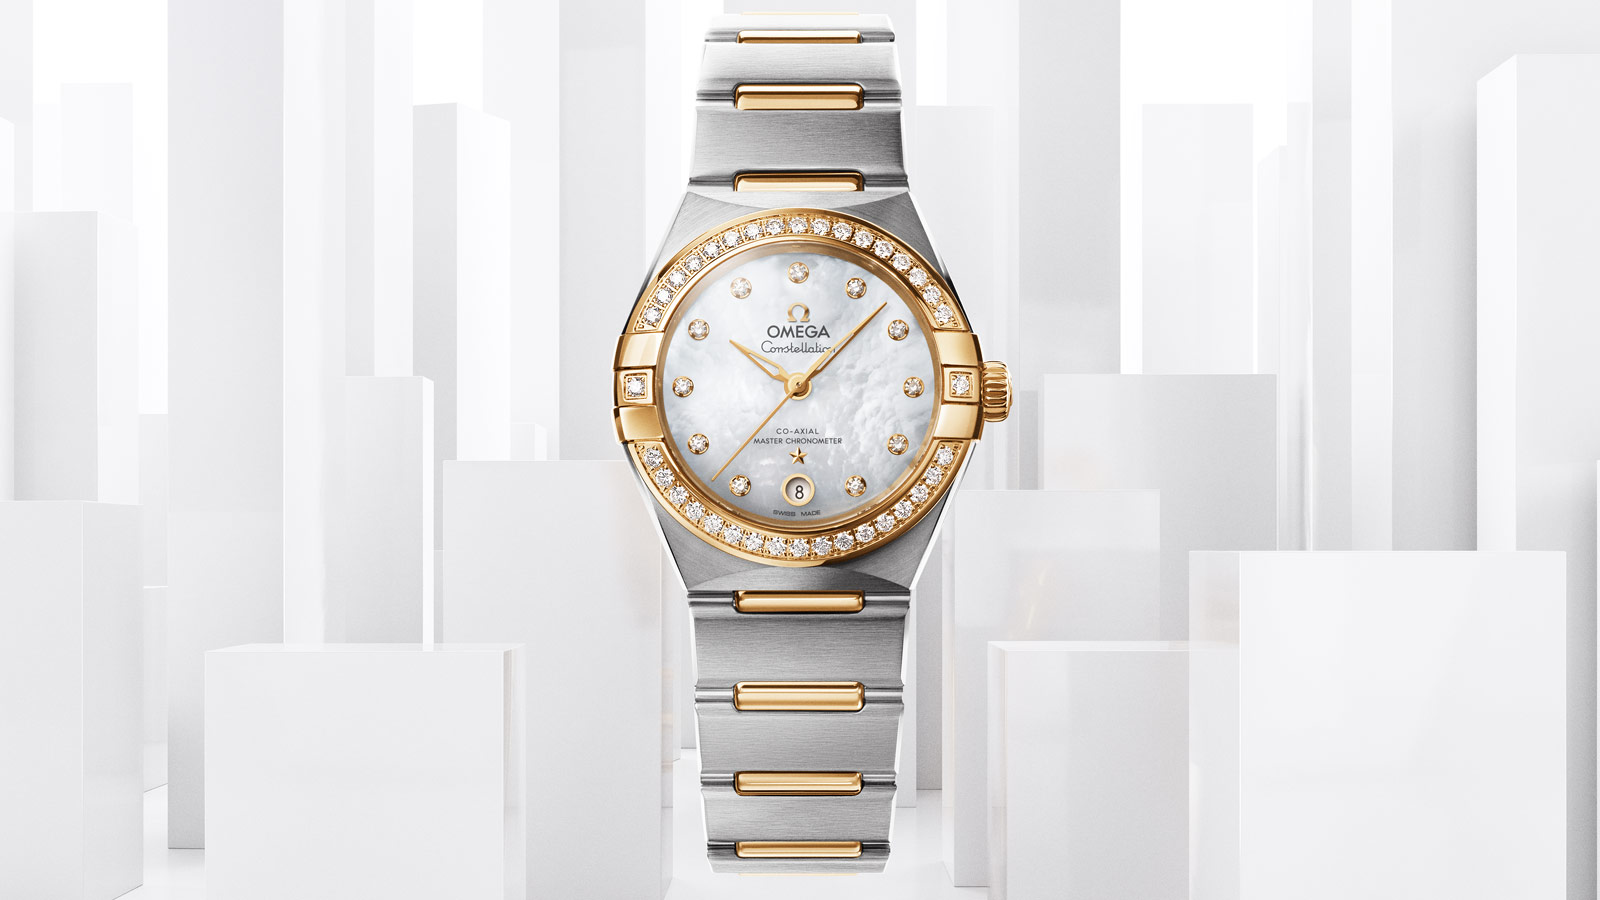 Constellation Constellation Constellation OMEGA Co‑Axial Master Chronometer 29 mm Watch - 131.25.29.20.55.002